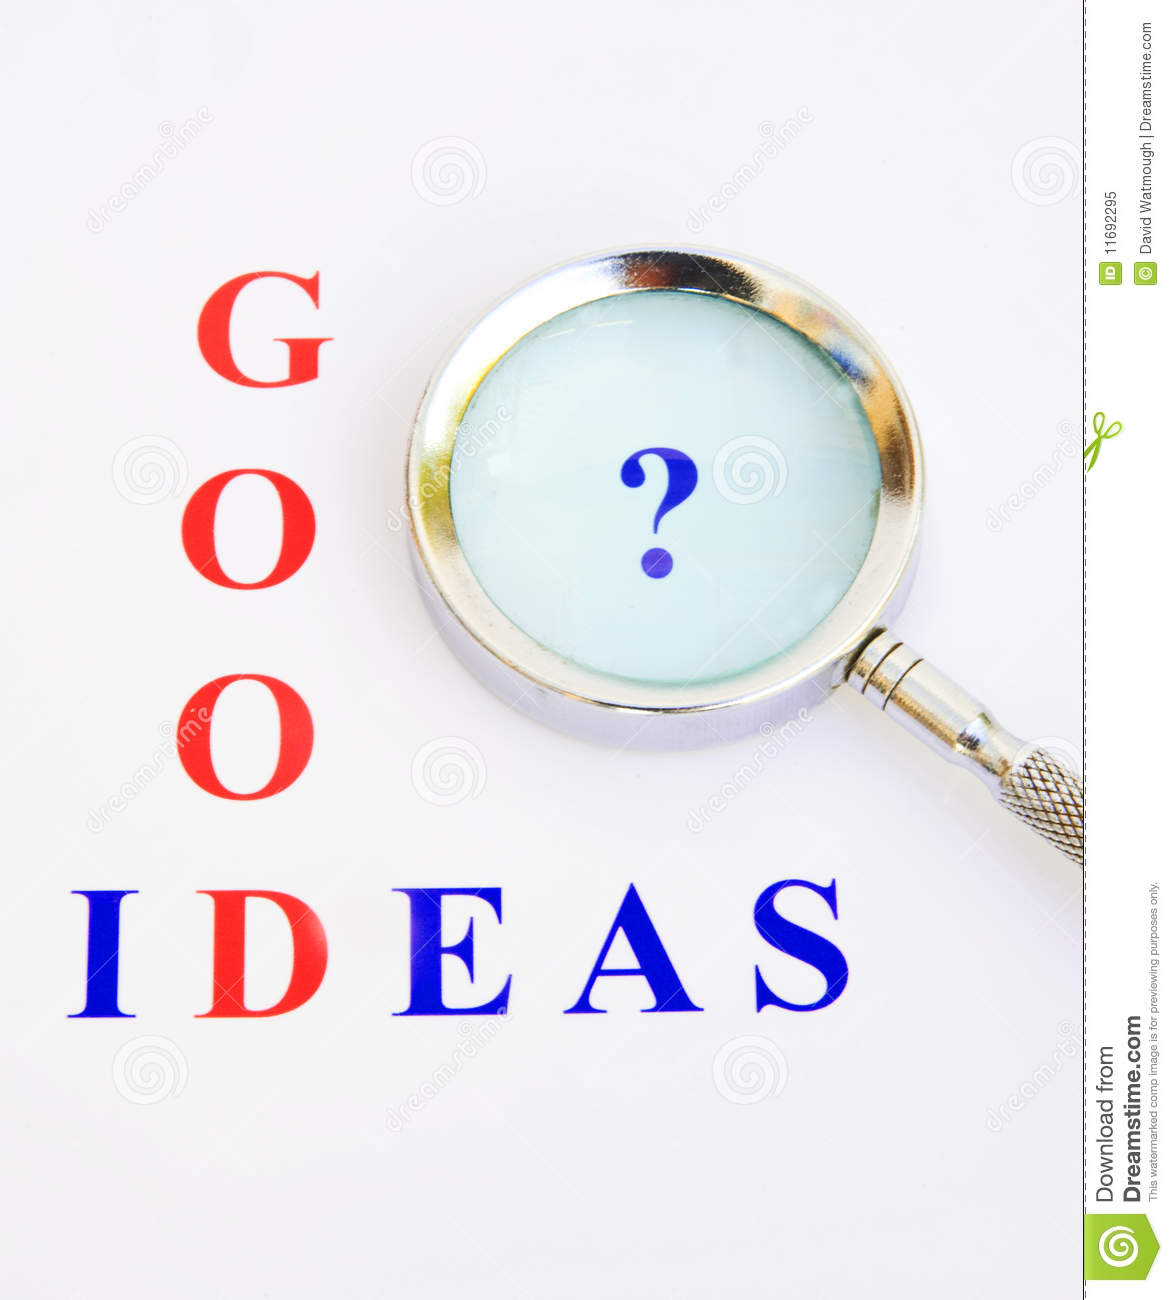 Good Picture Ideas: Any Good Ideas ? Royalty Free Stock Photo